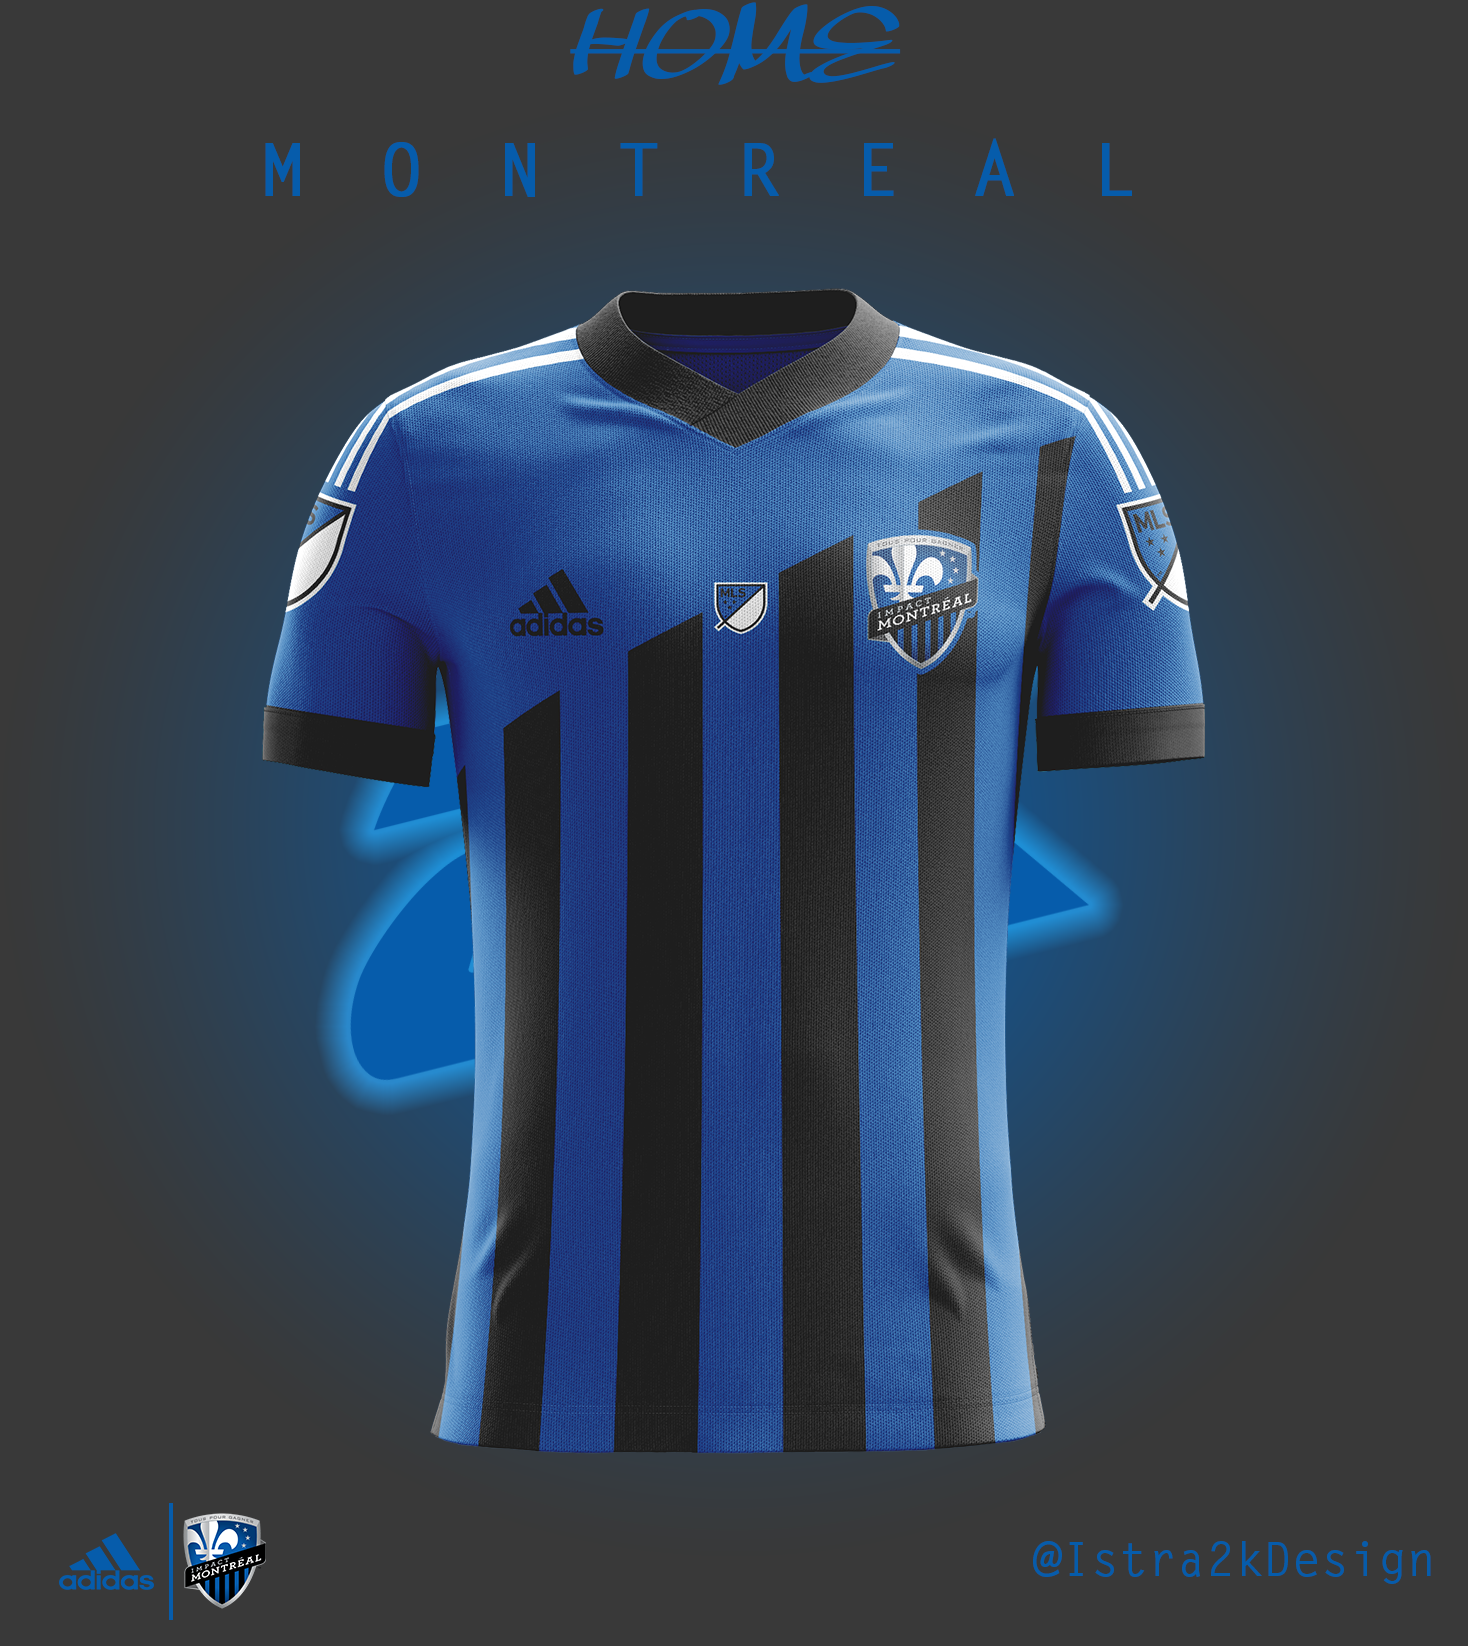 new arrival 1f279 b167e Montreal Impact - Home kit